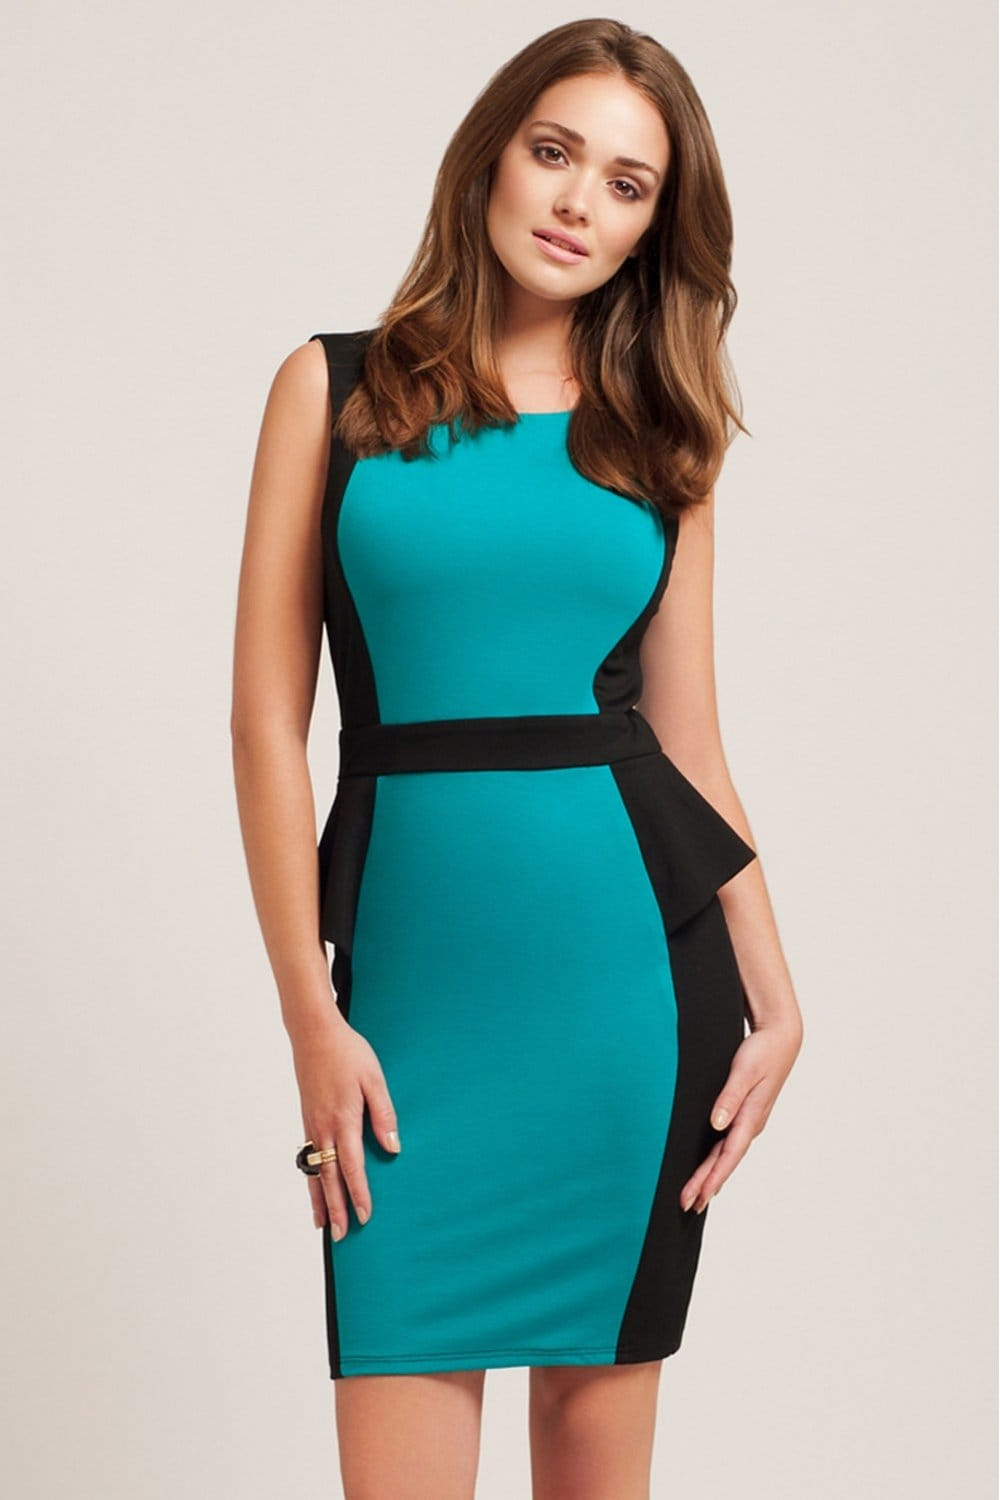 Little Mistress Black & Teal Statement Panel Peplum Dress